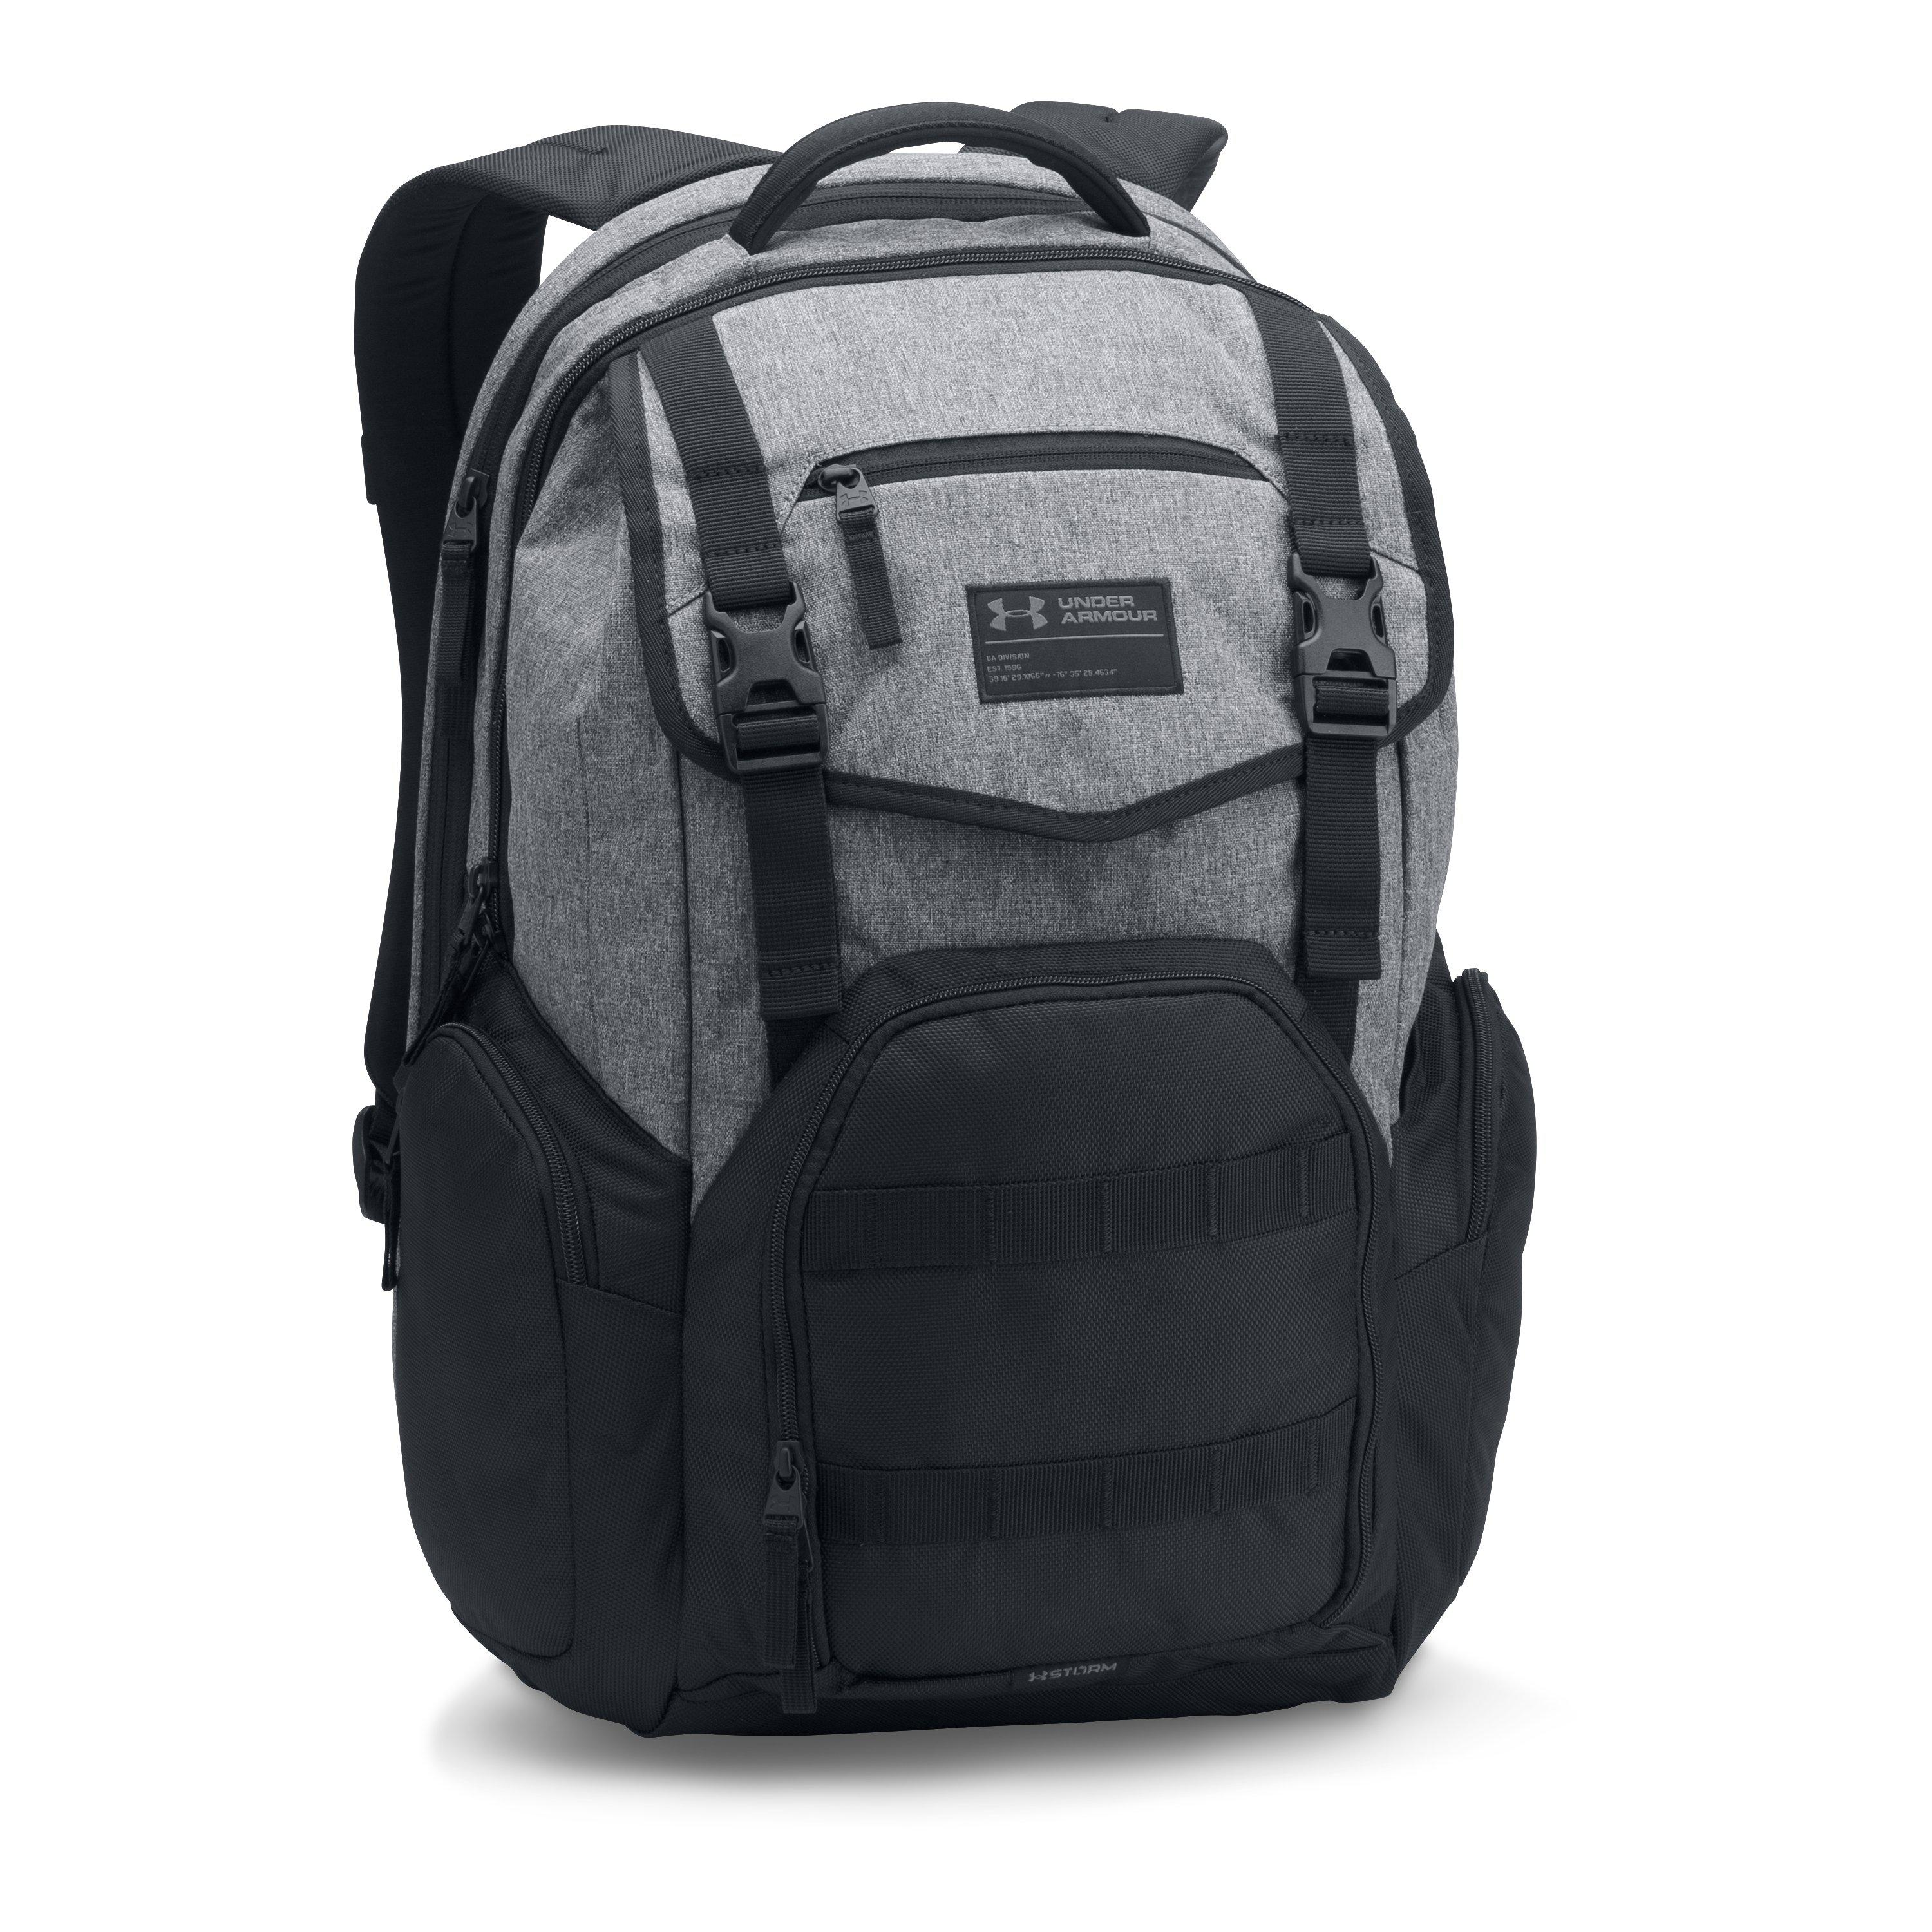 92f035f860 Lyst - Under Armour Ua Coalition 2.0 Backpack in Black for Men